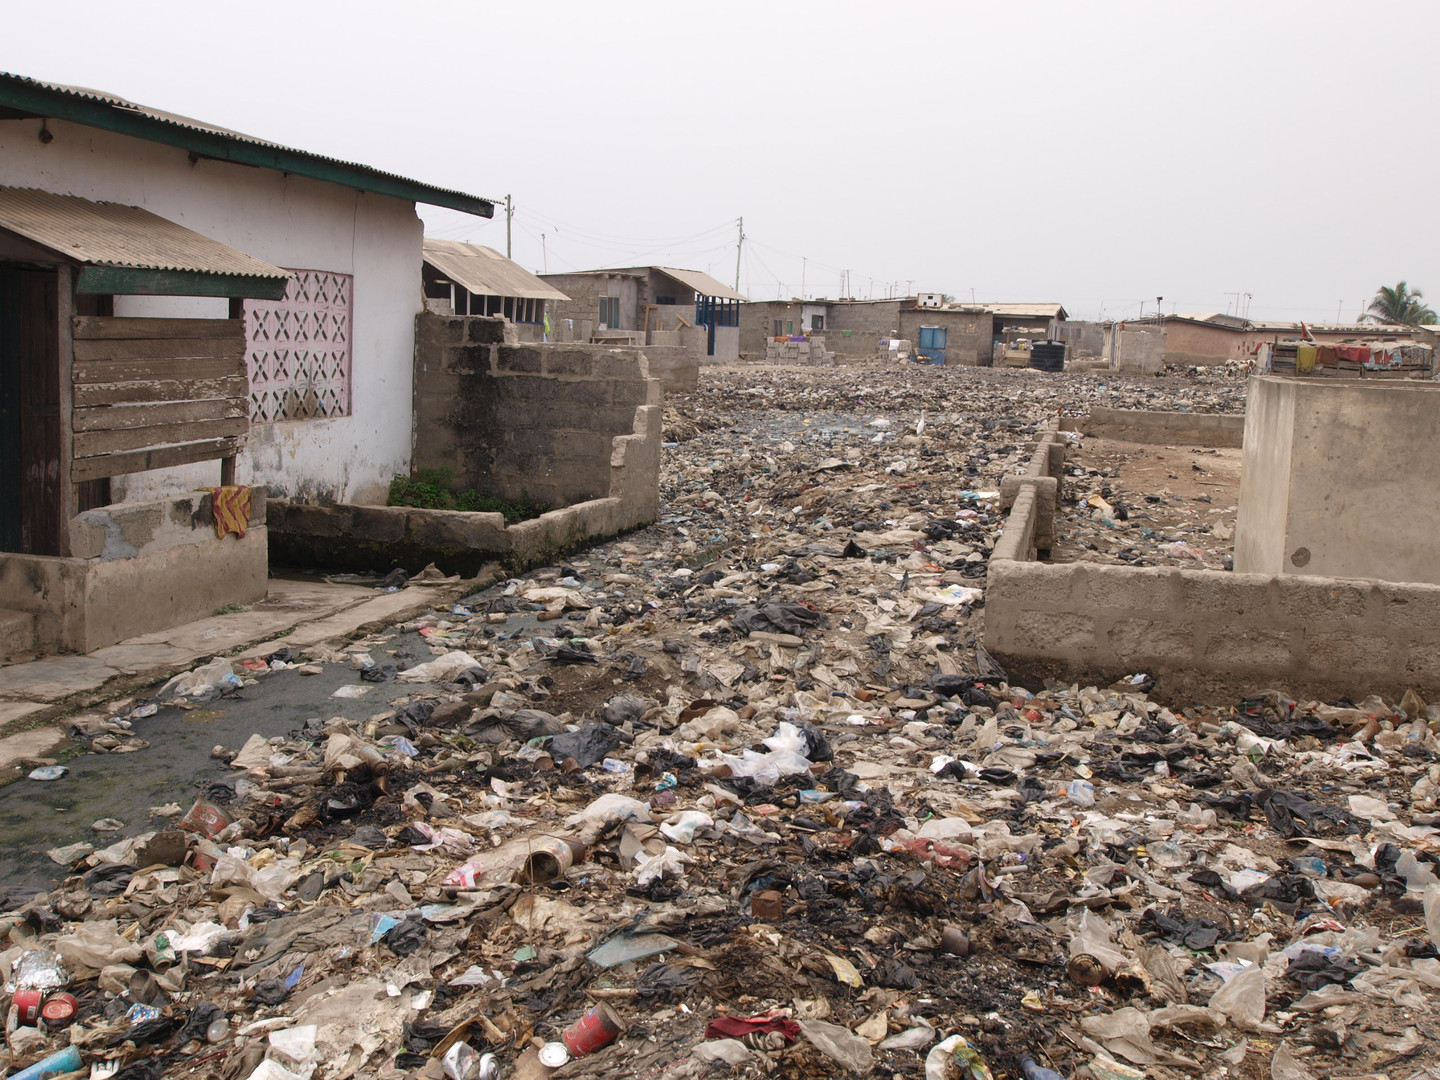 Trash and floodwater in a crowded neighborhood in Accra.